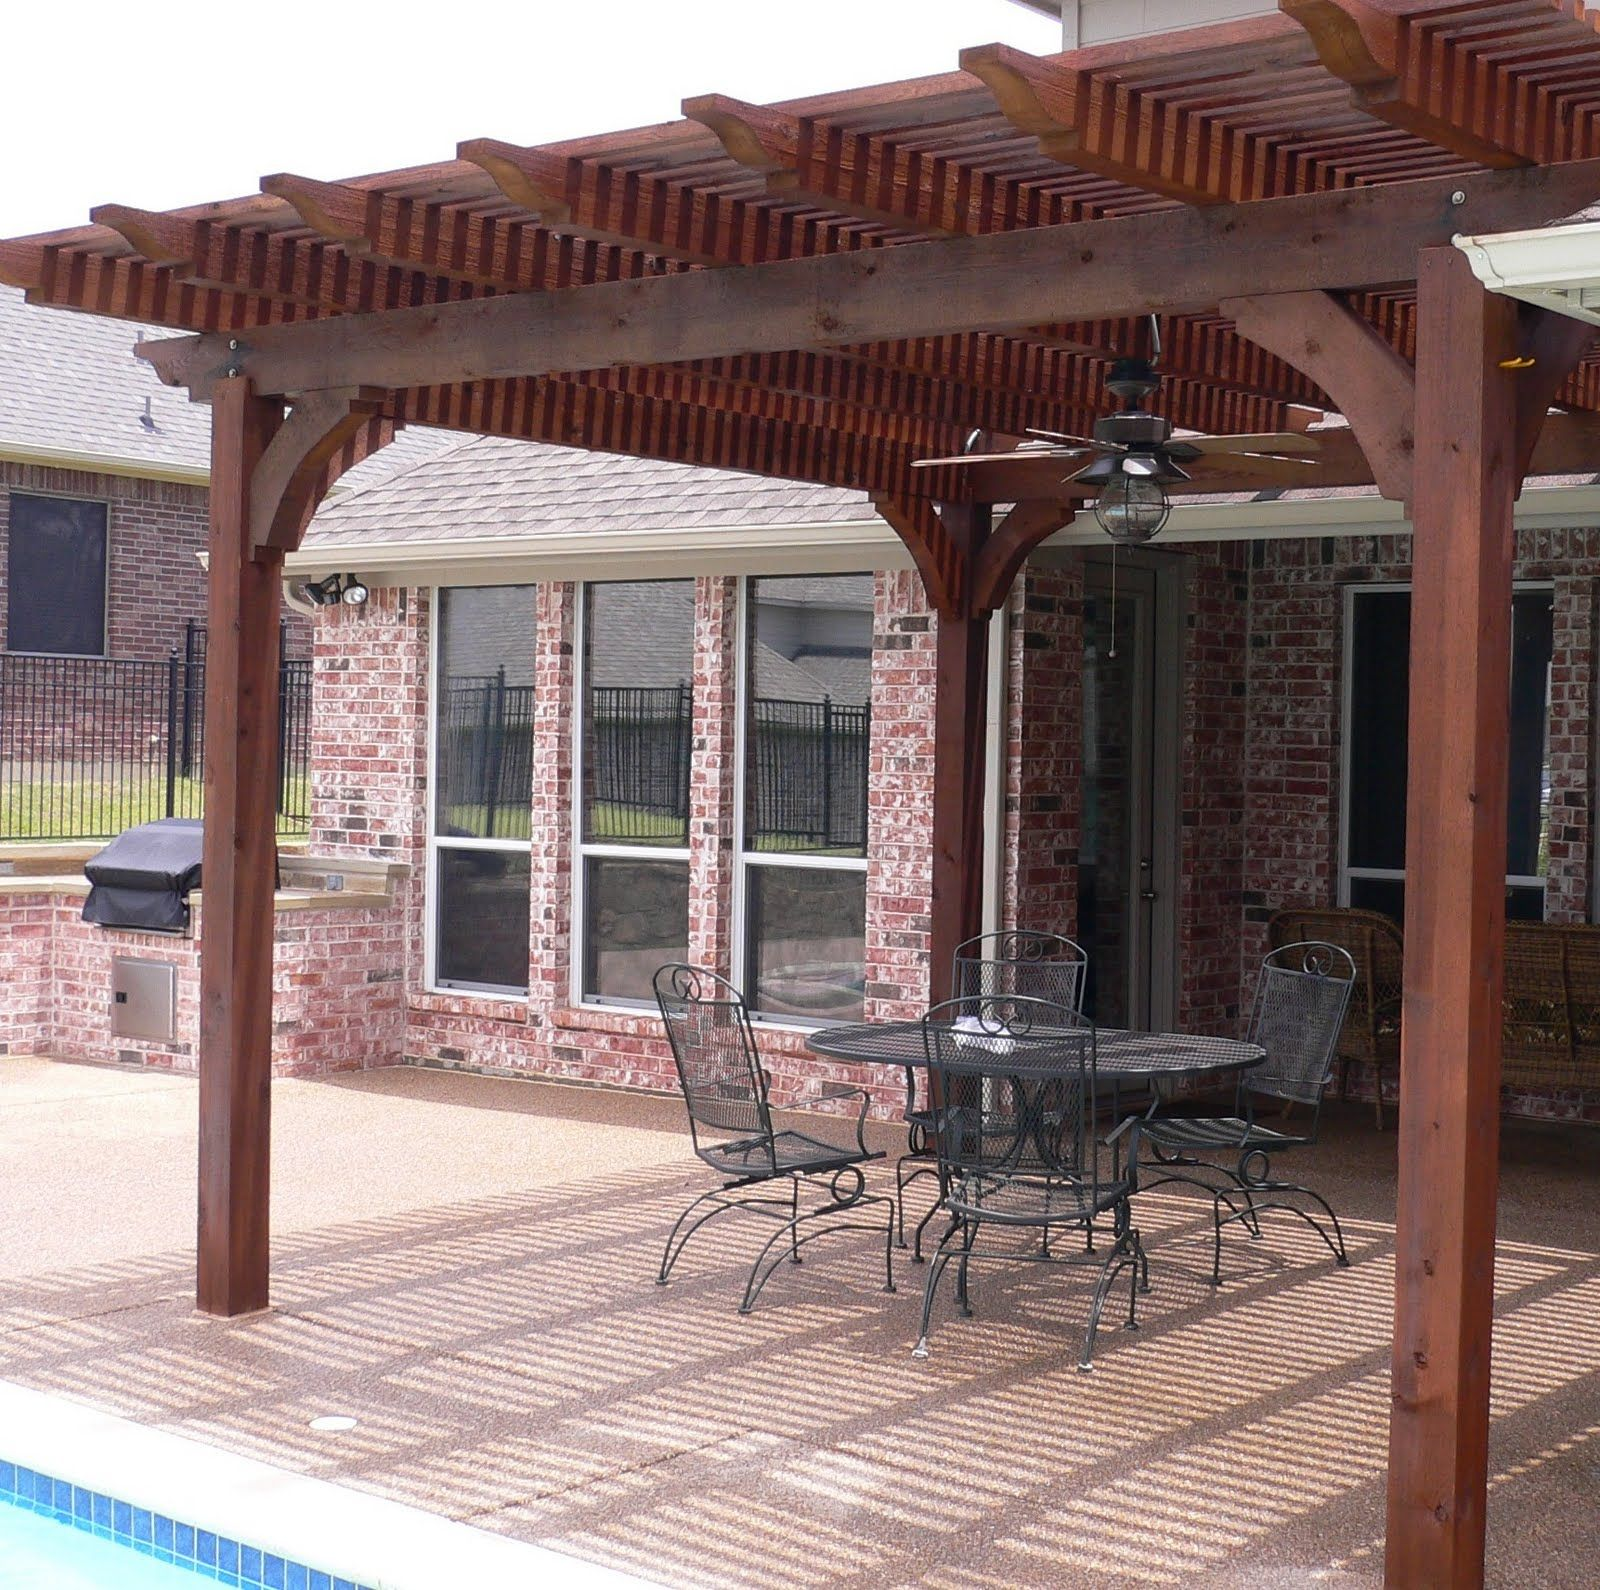 Covered patio roof ideas free standing patio covers gazebos and - 20 Creative Patio Outdoor Bar Ideas You Must Try At Your Backyard